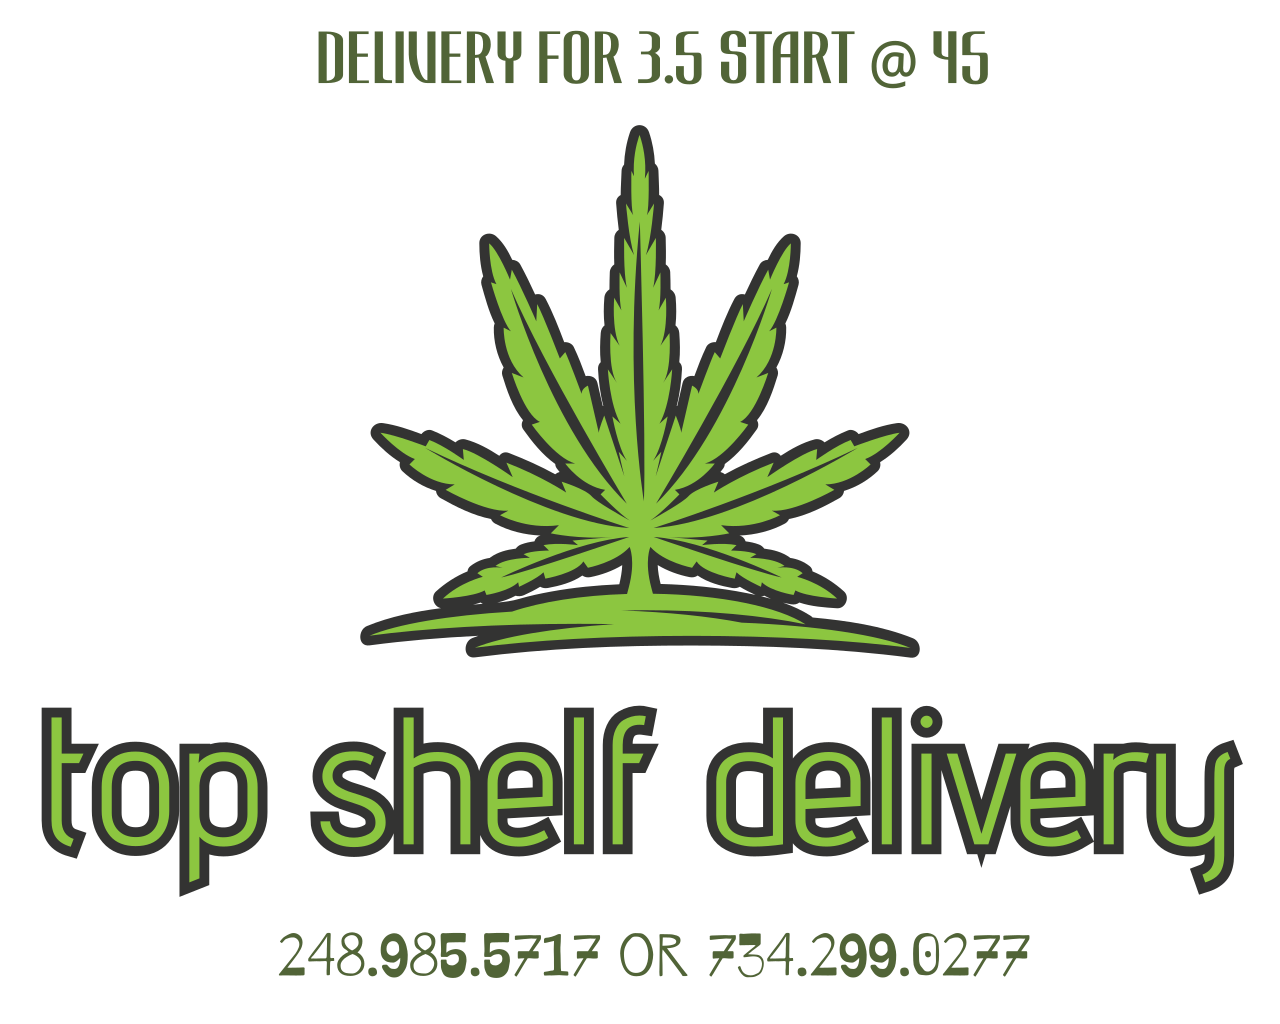 TOP SHELF DELIVERY